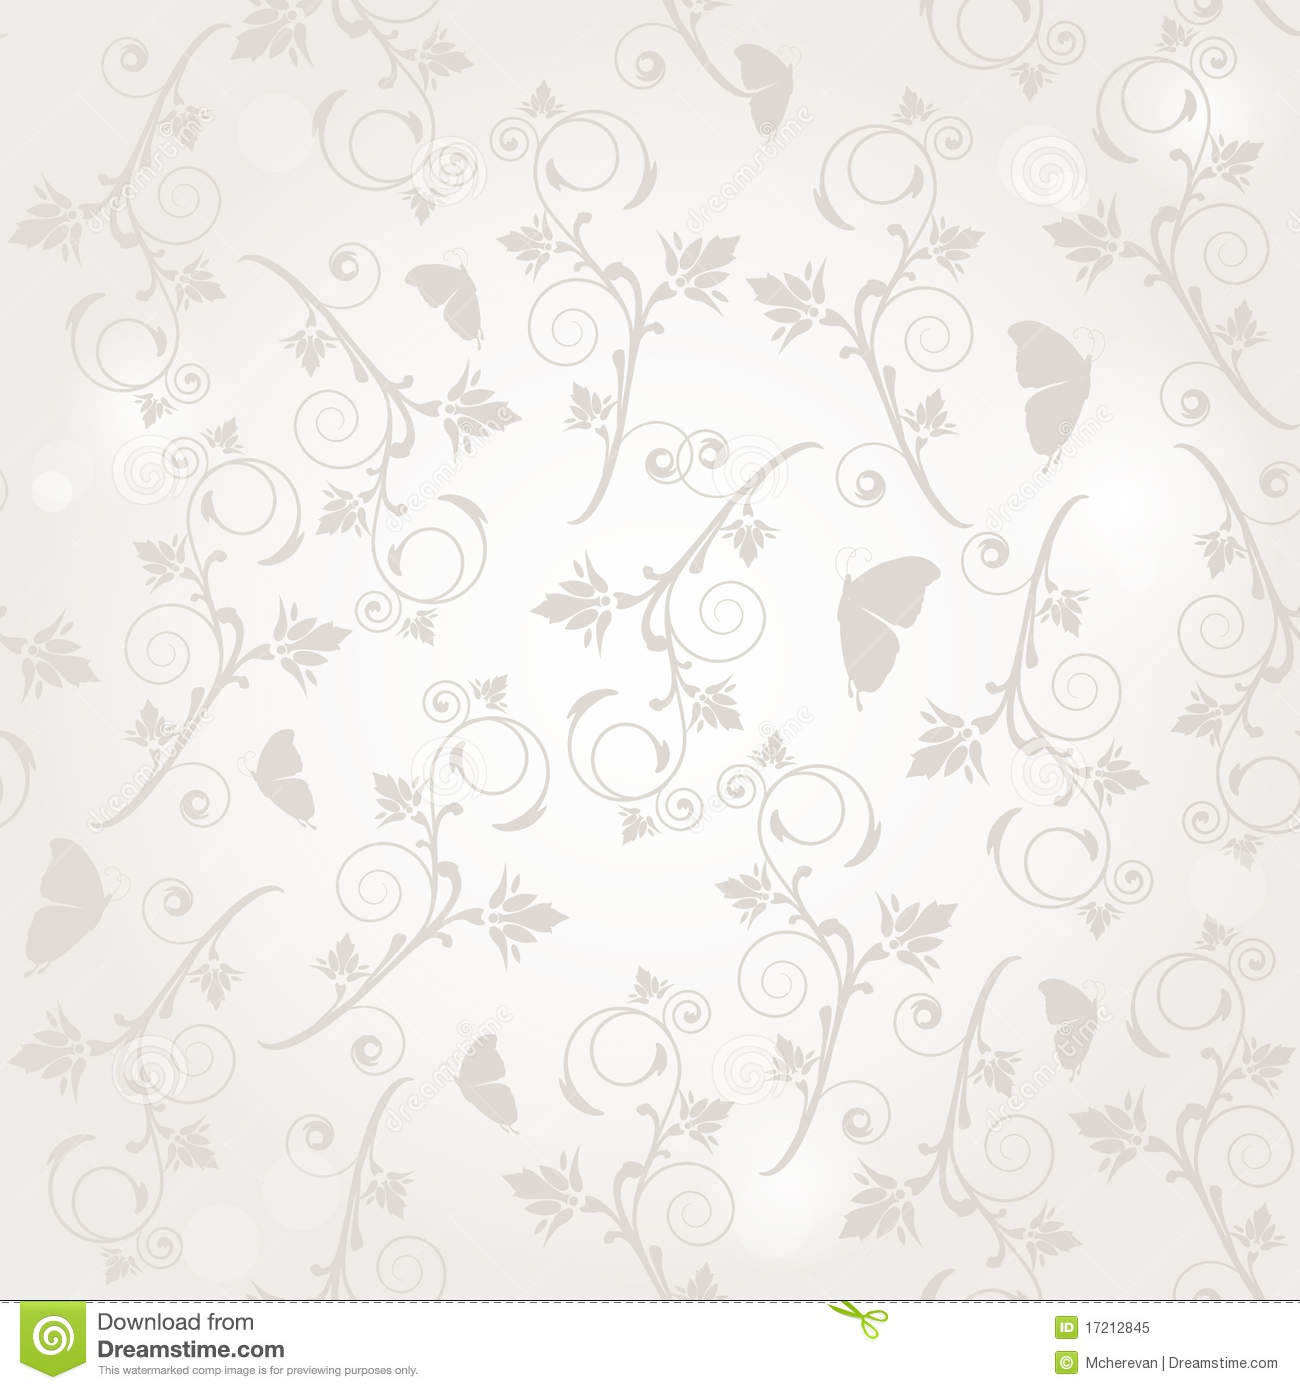 Vintage seamless background with flowers and butte